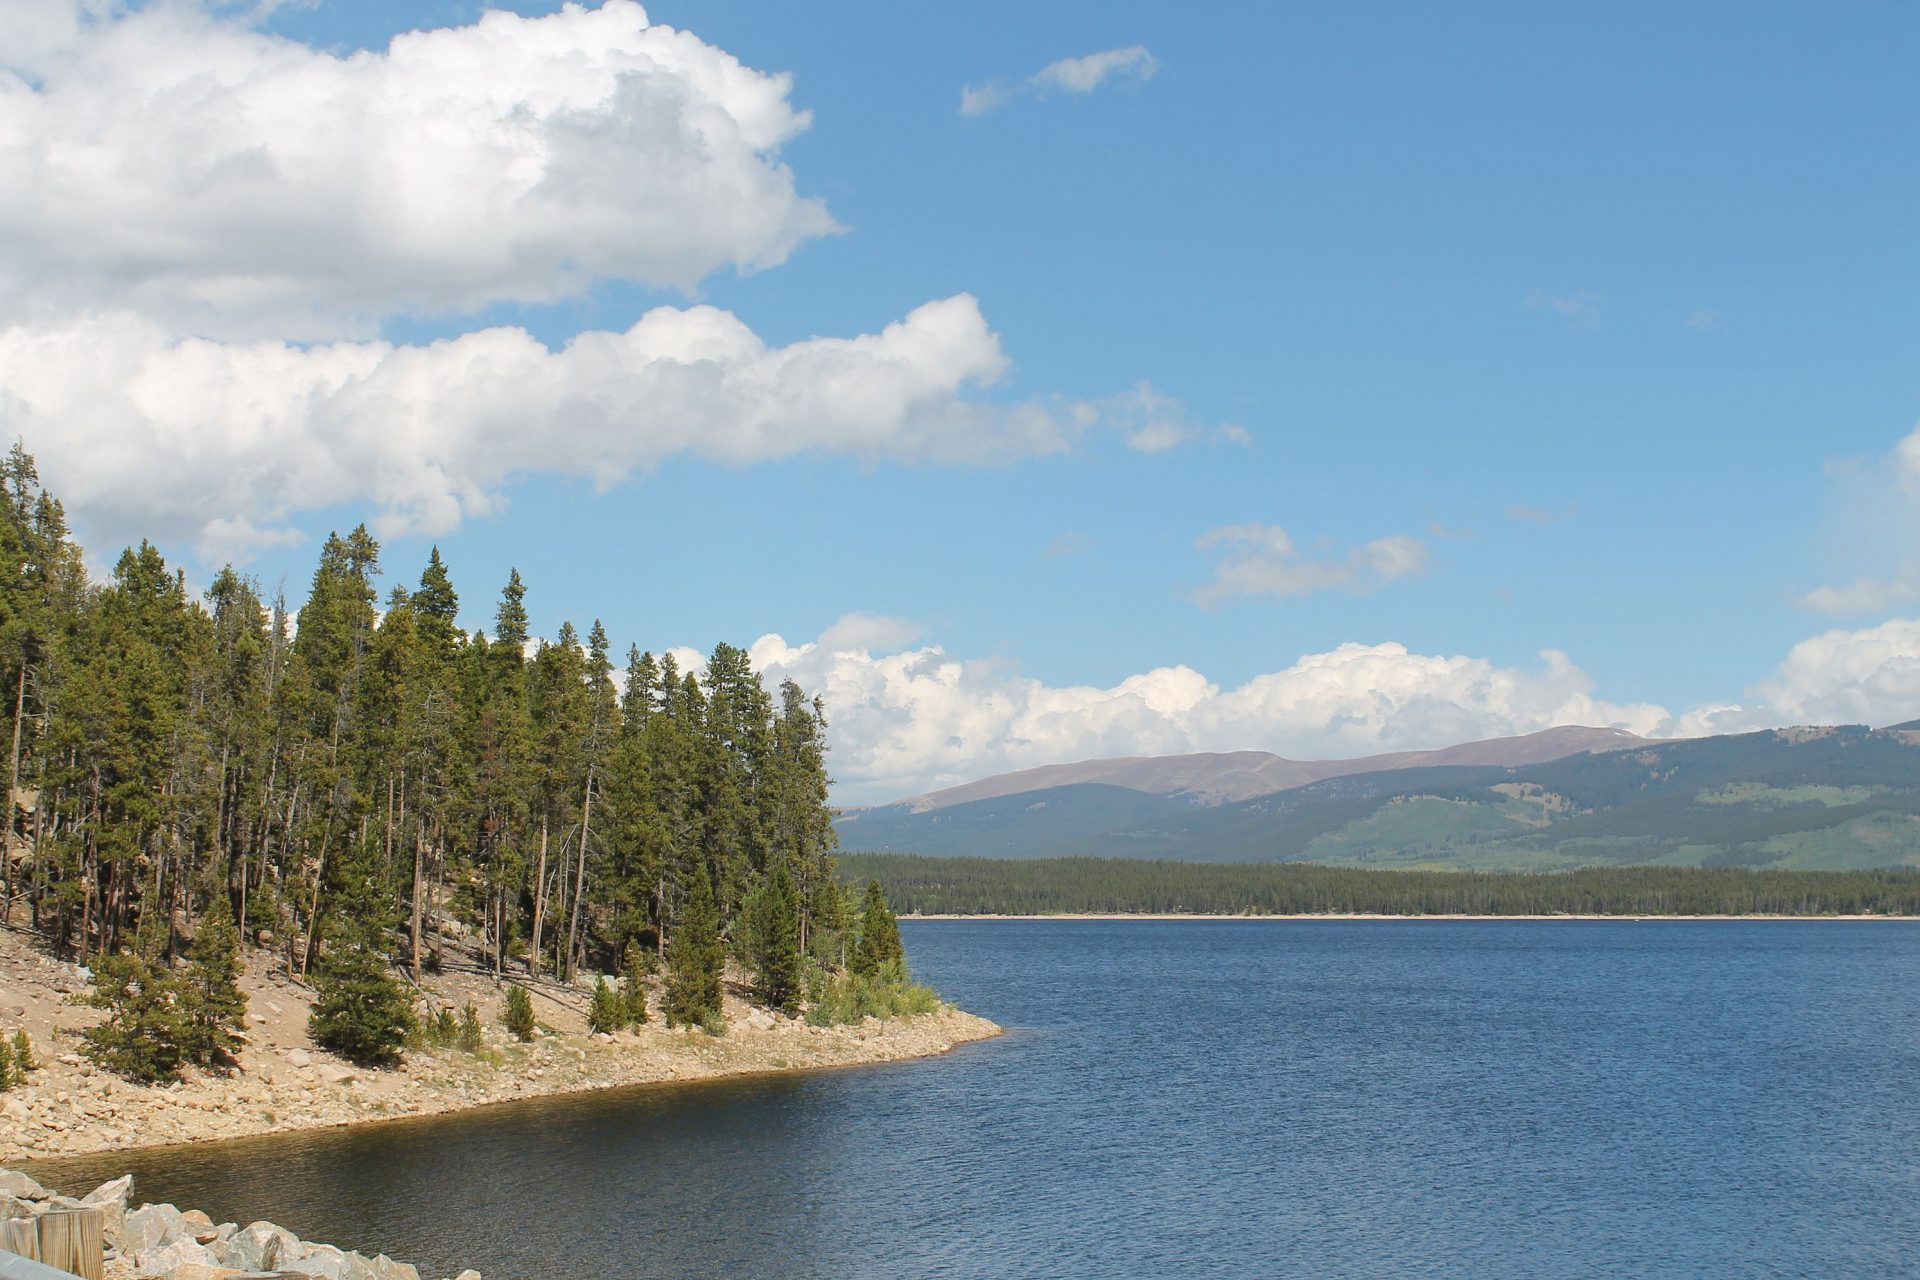 Turquoise lake leadville 39 s sparkling gem leadville for Fishing lakes in colorado springs